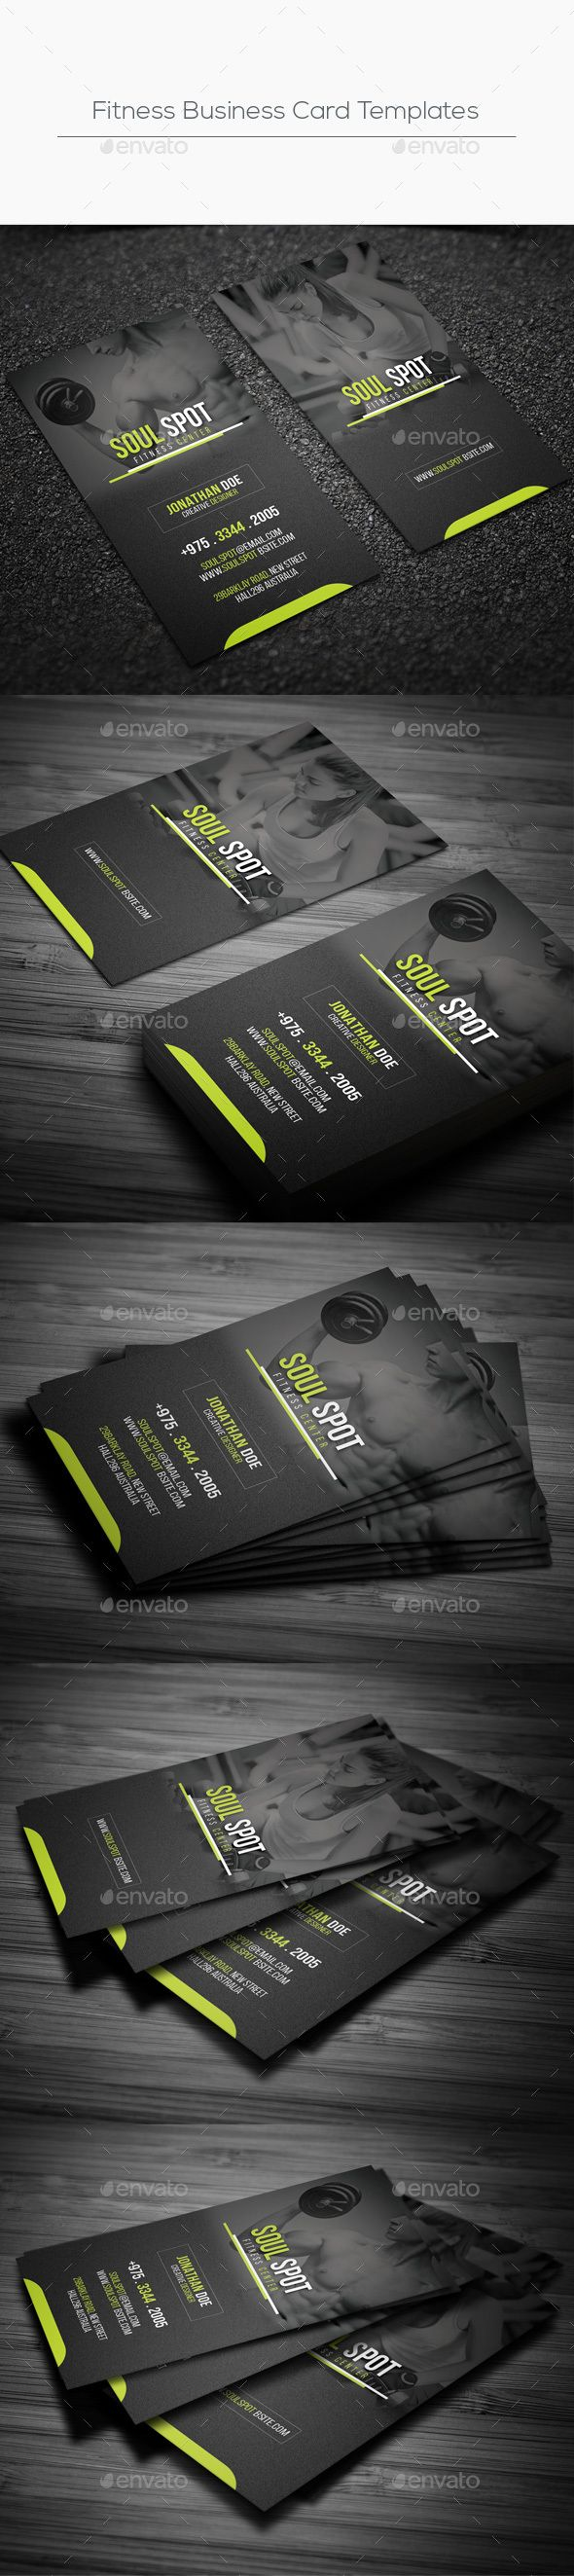 Fitness business card templates card templates business cards and fitness business card template psd download here httpgraphicriveritemfitness business card templates 16427866refksioks reheart Images